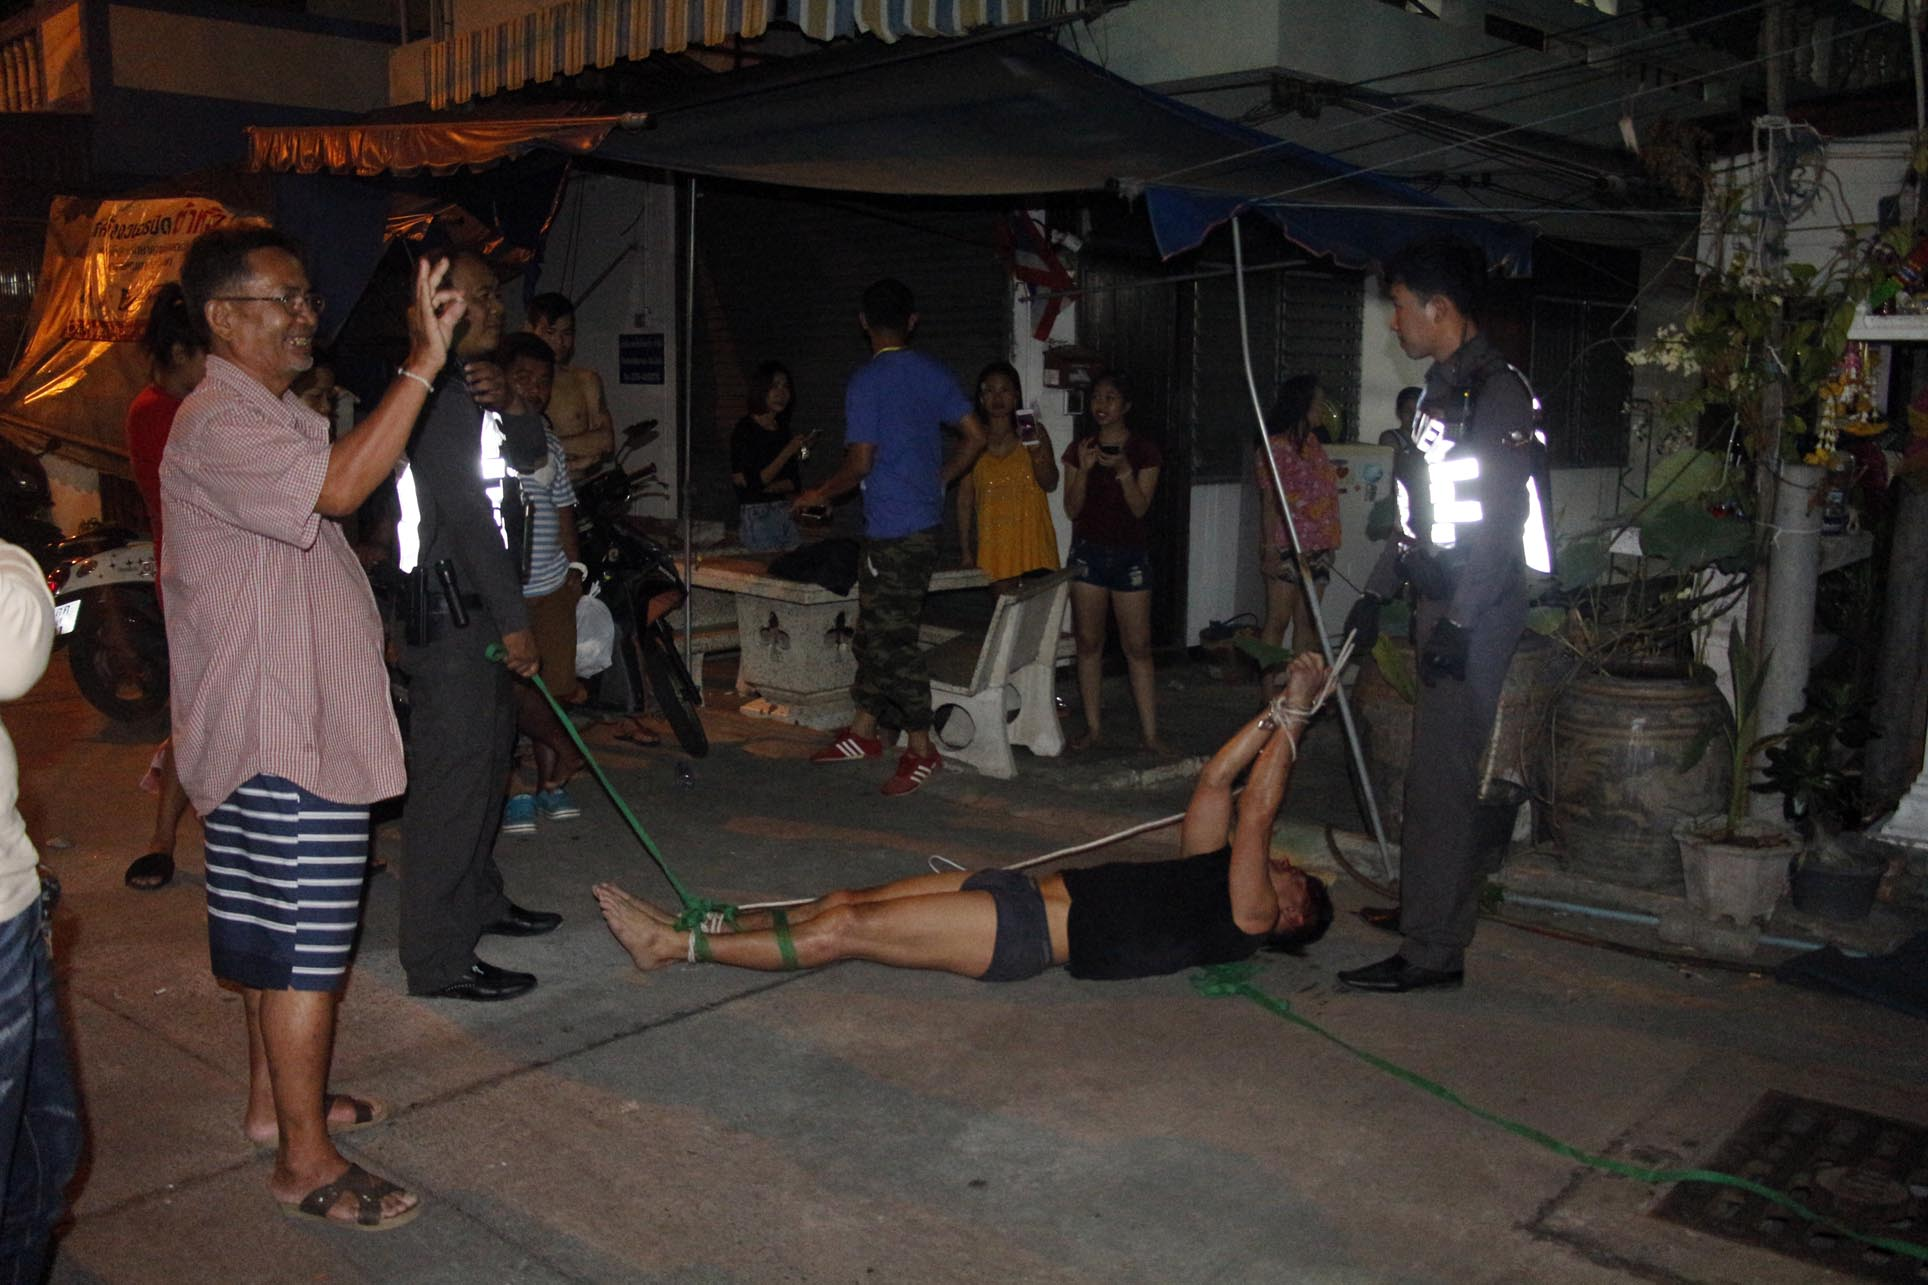 A Brit in boxers was hog-tied by angry Pattaya residents after he got drunk and ran across their roofs, shouting like a maniac.